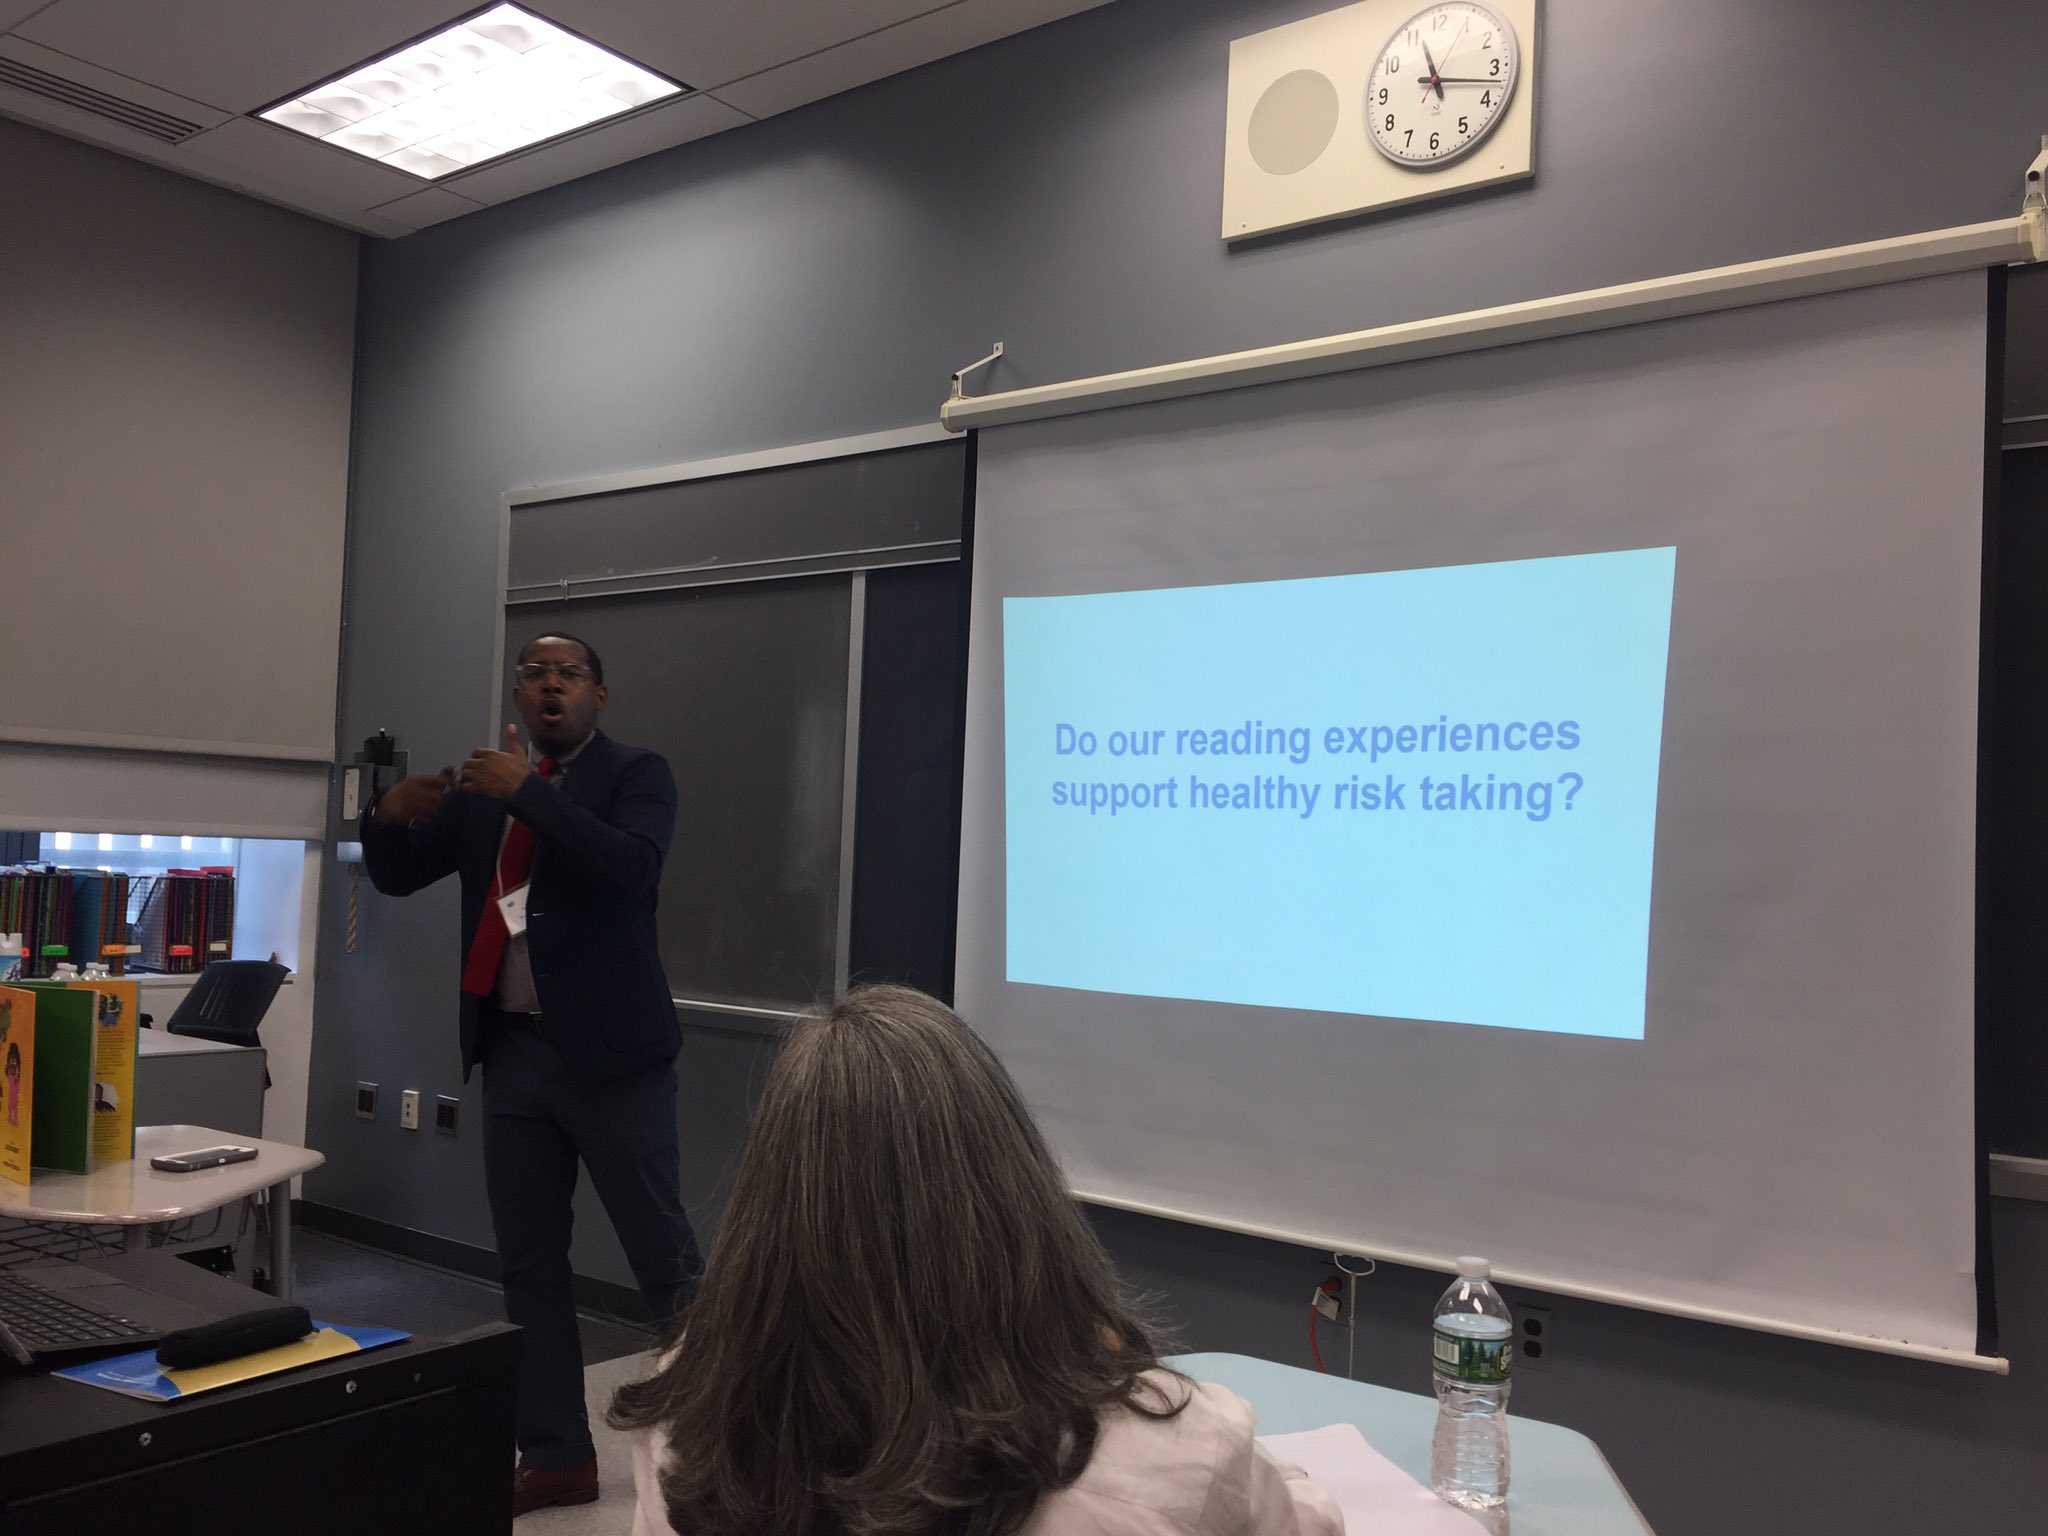 Do our reading experiences support healthy risk taking? @AlvinIrby #readingmatters #nyc @nationalbook https://t.co/OSnYcpd6oR